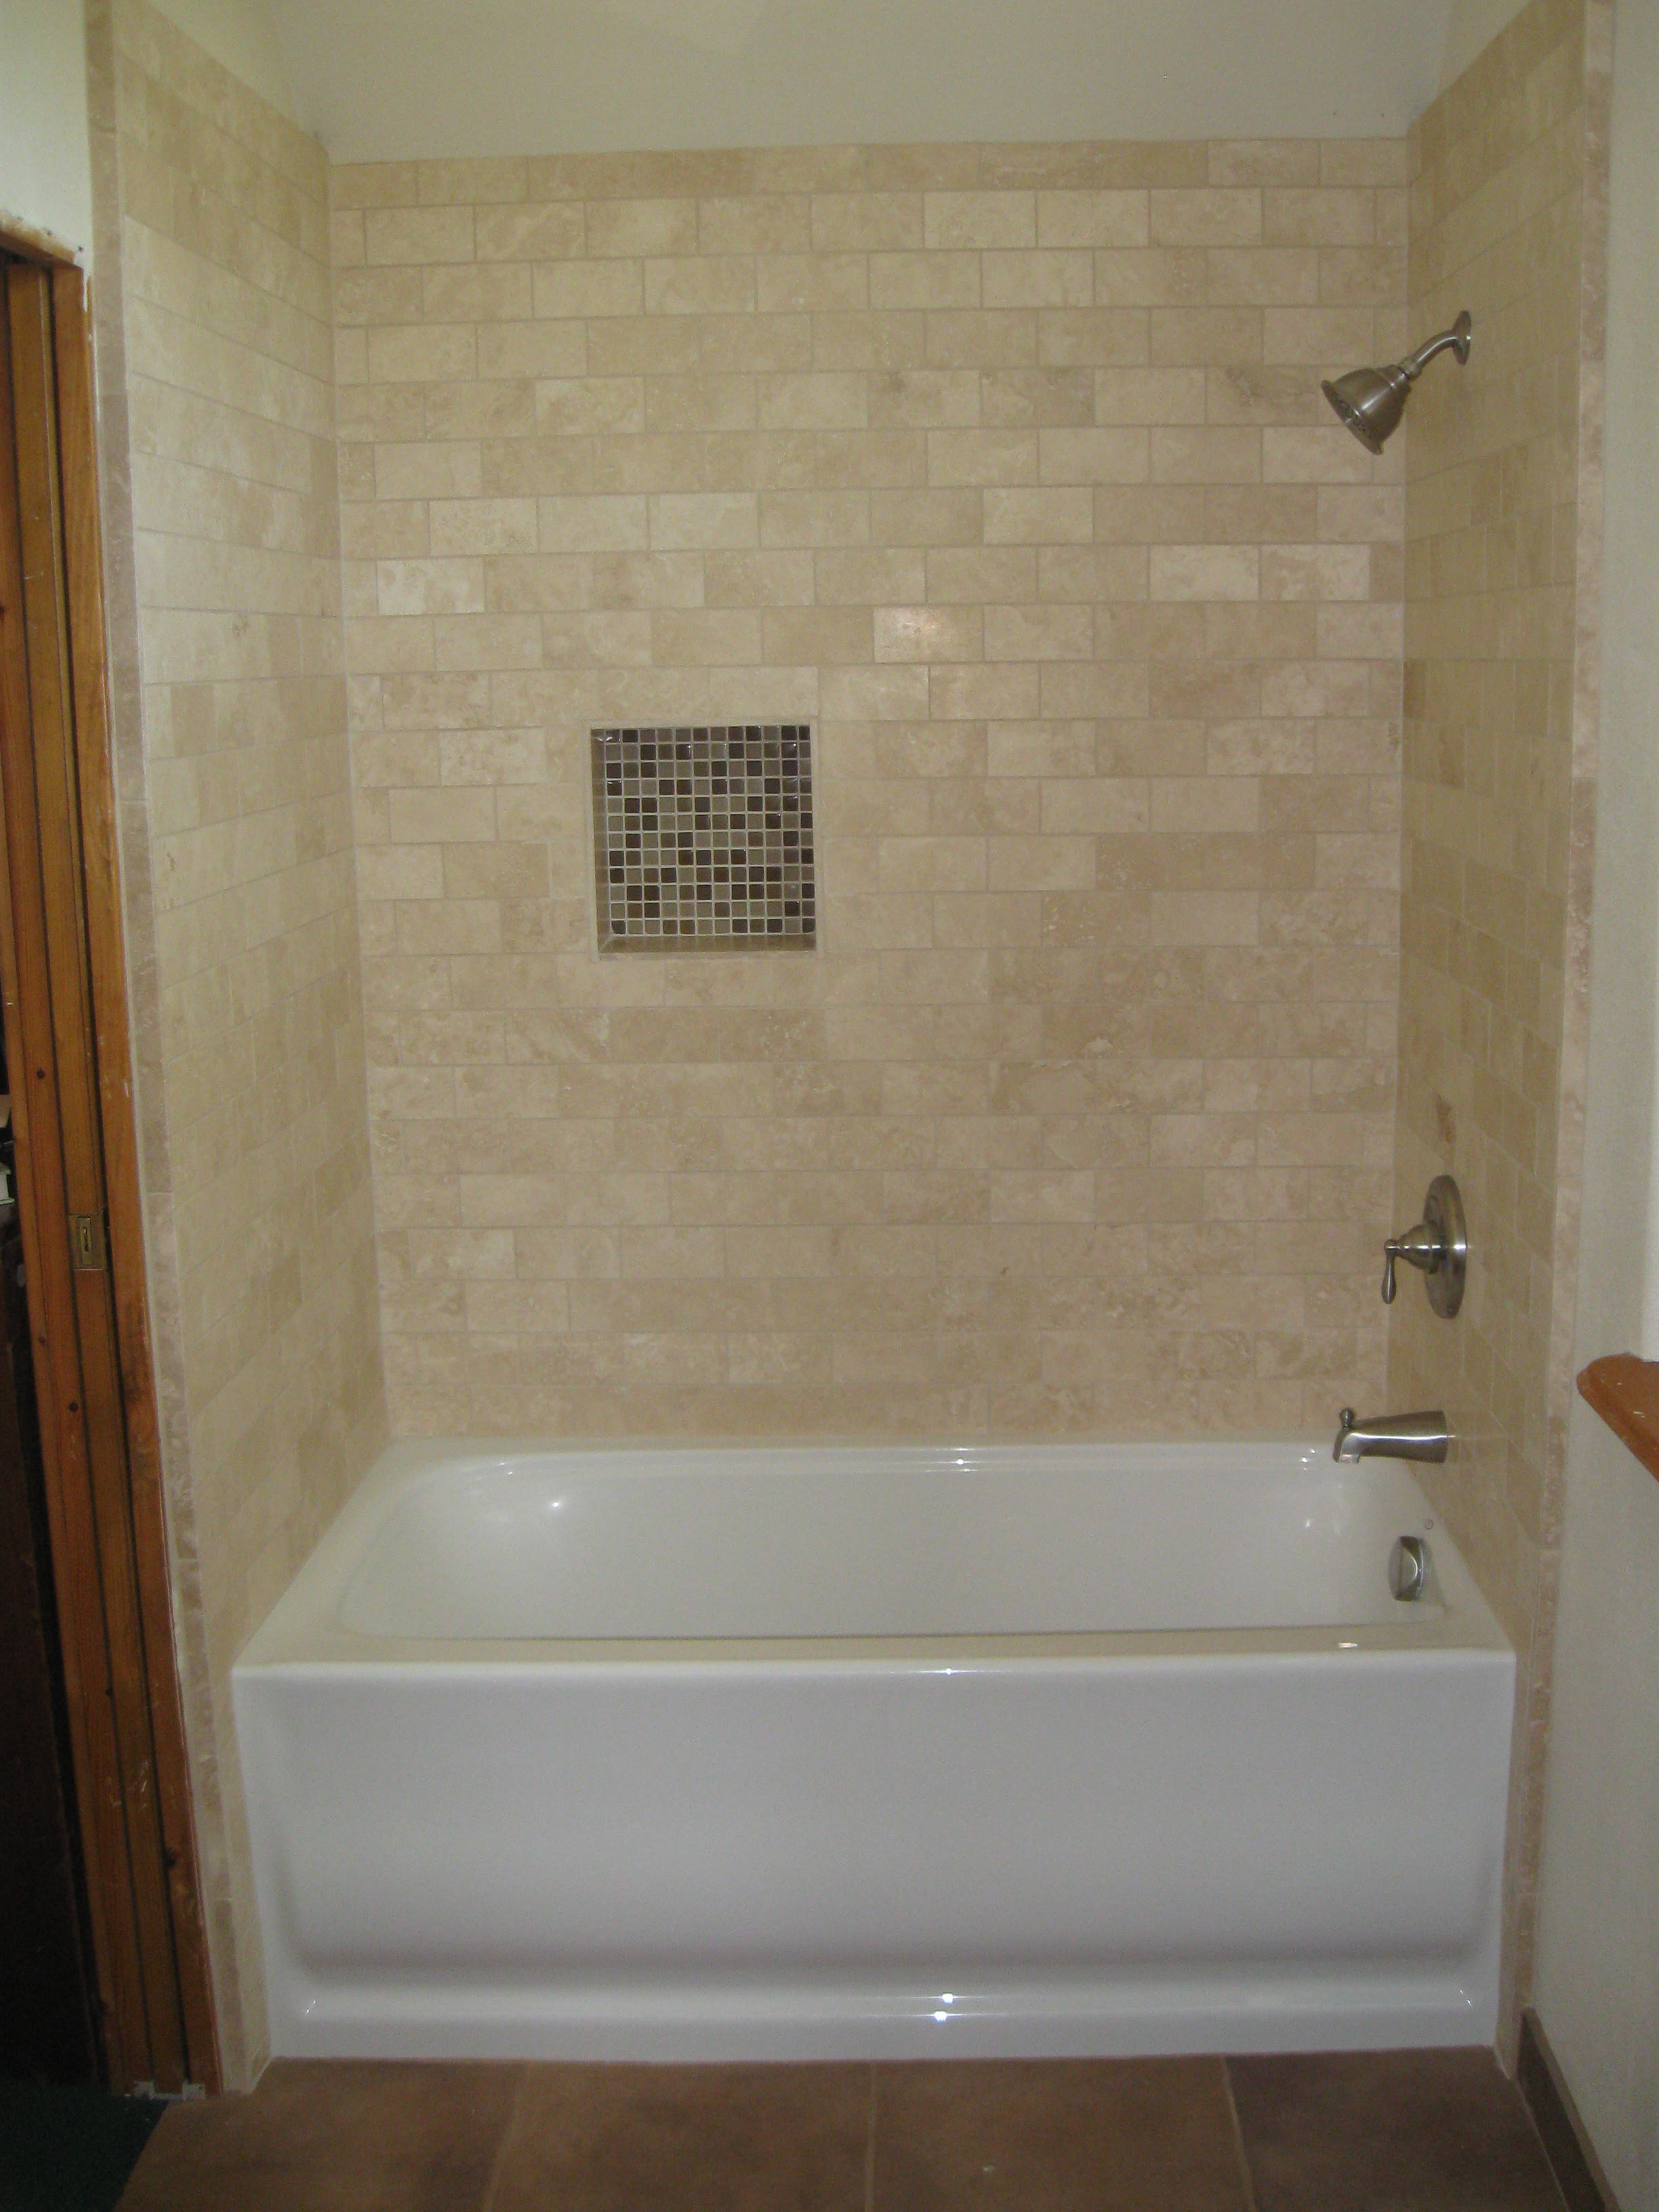 Fancy Simple Bathroom Tub Tile Ideas Pictures 62 Inside Home Remodel With throughout Bathroom Tub Tile Ideas